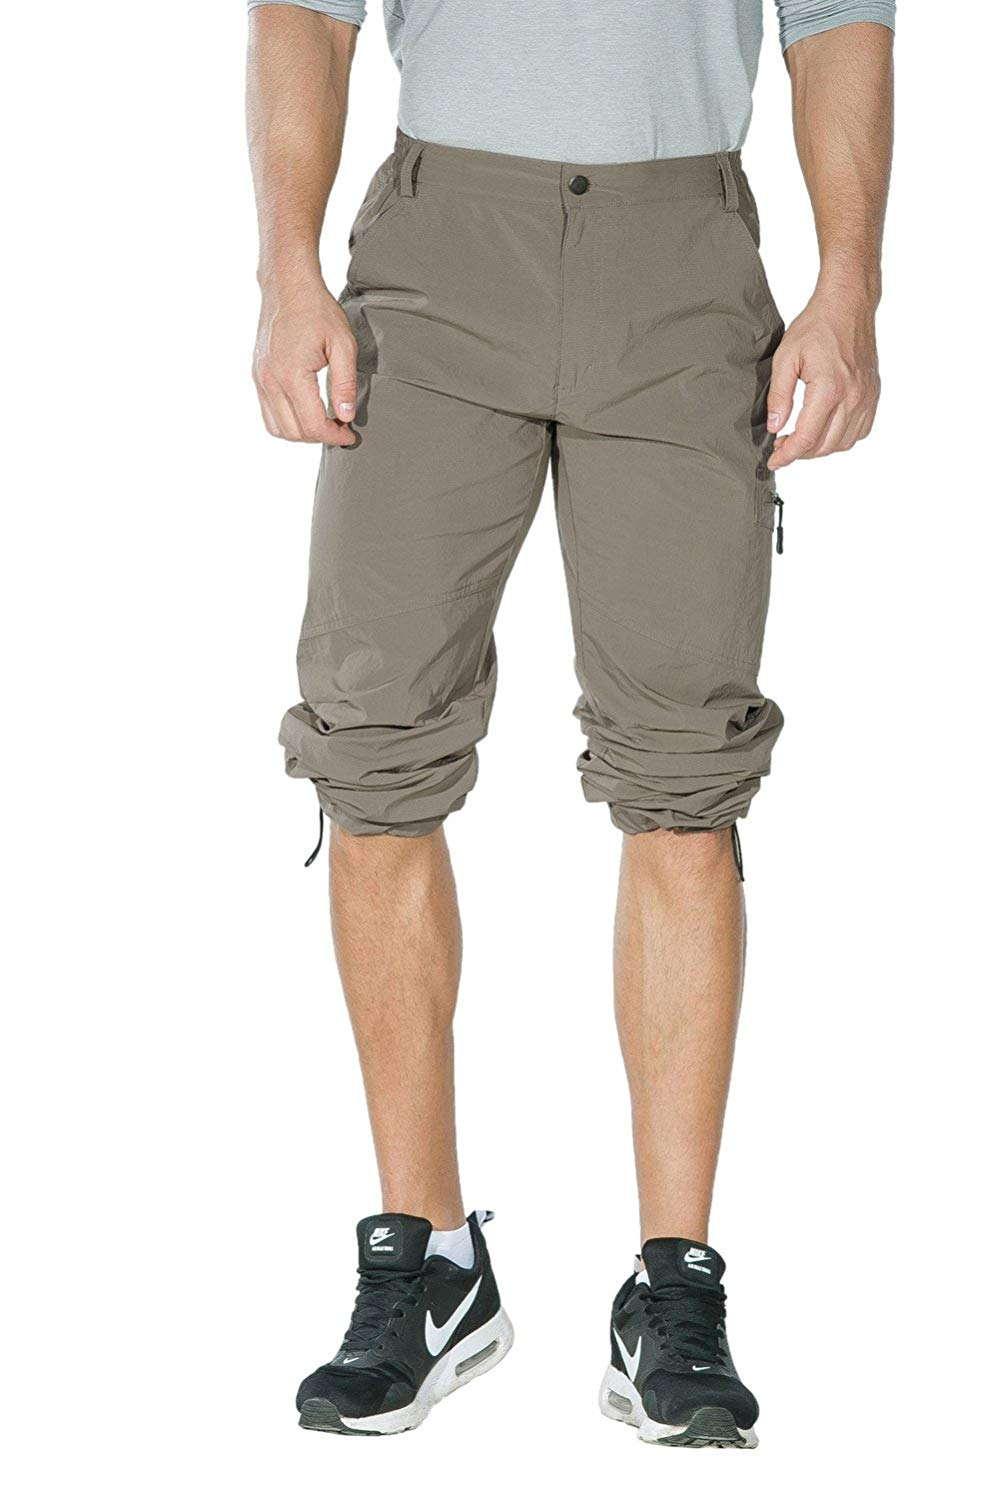 Unitop Men's Lightweight Hiking Cargo Pants rolled up